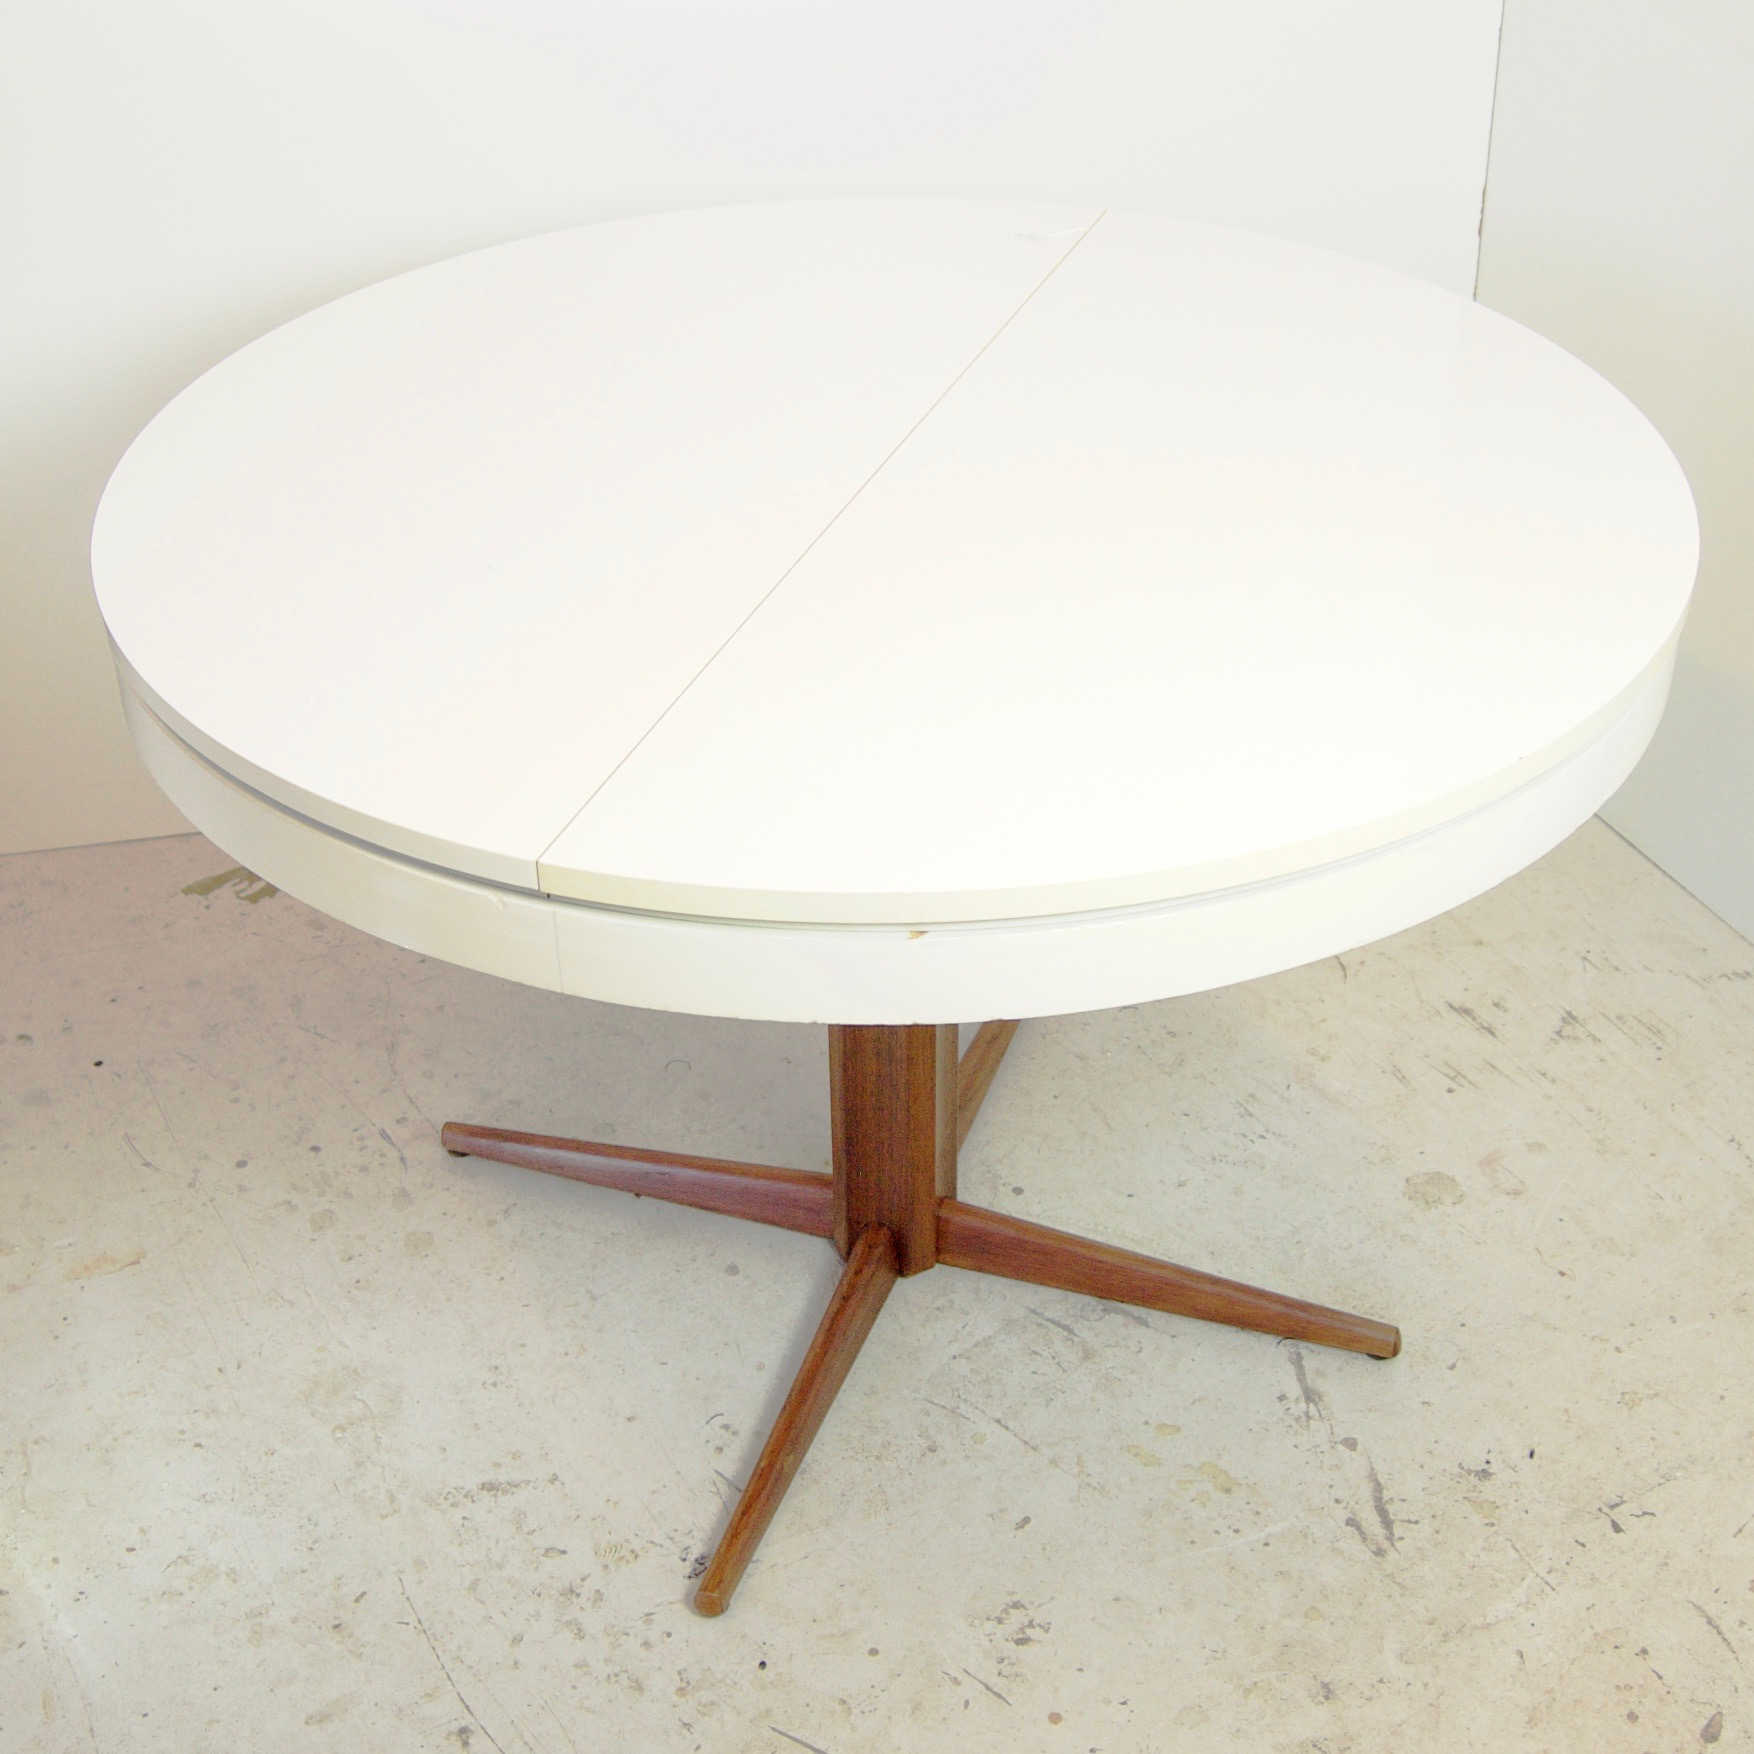 Closed cvintage round table